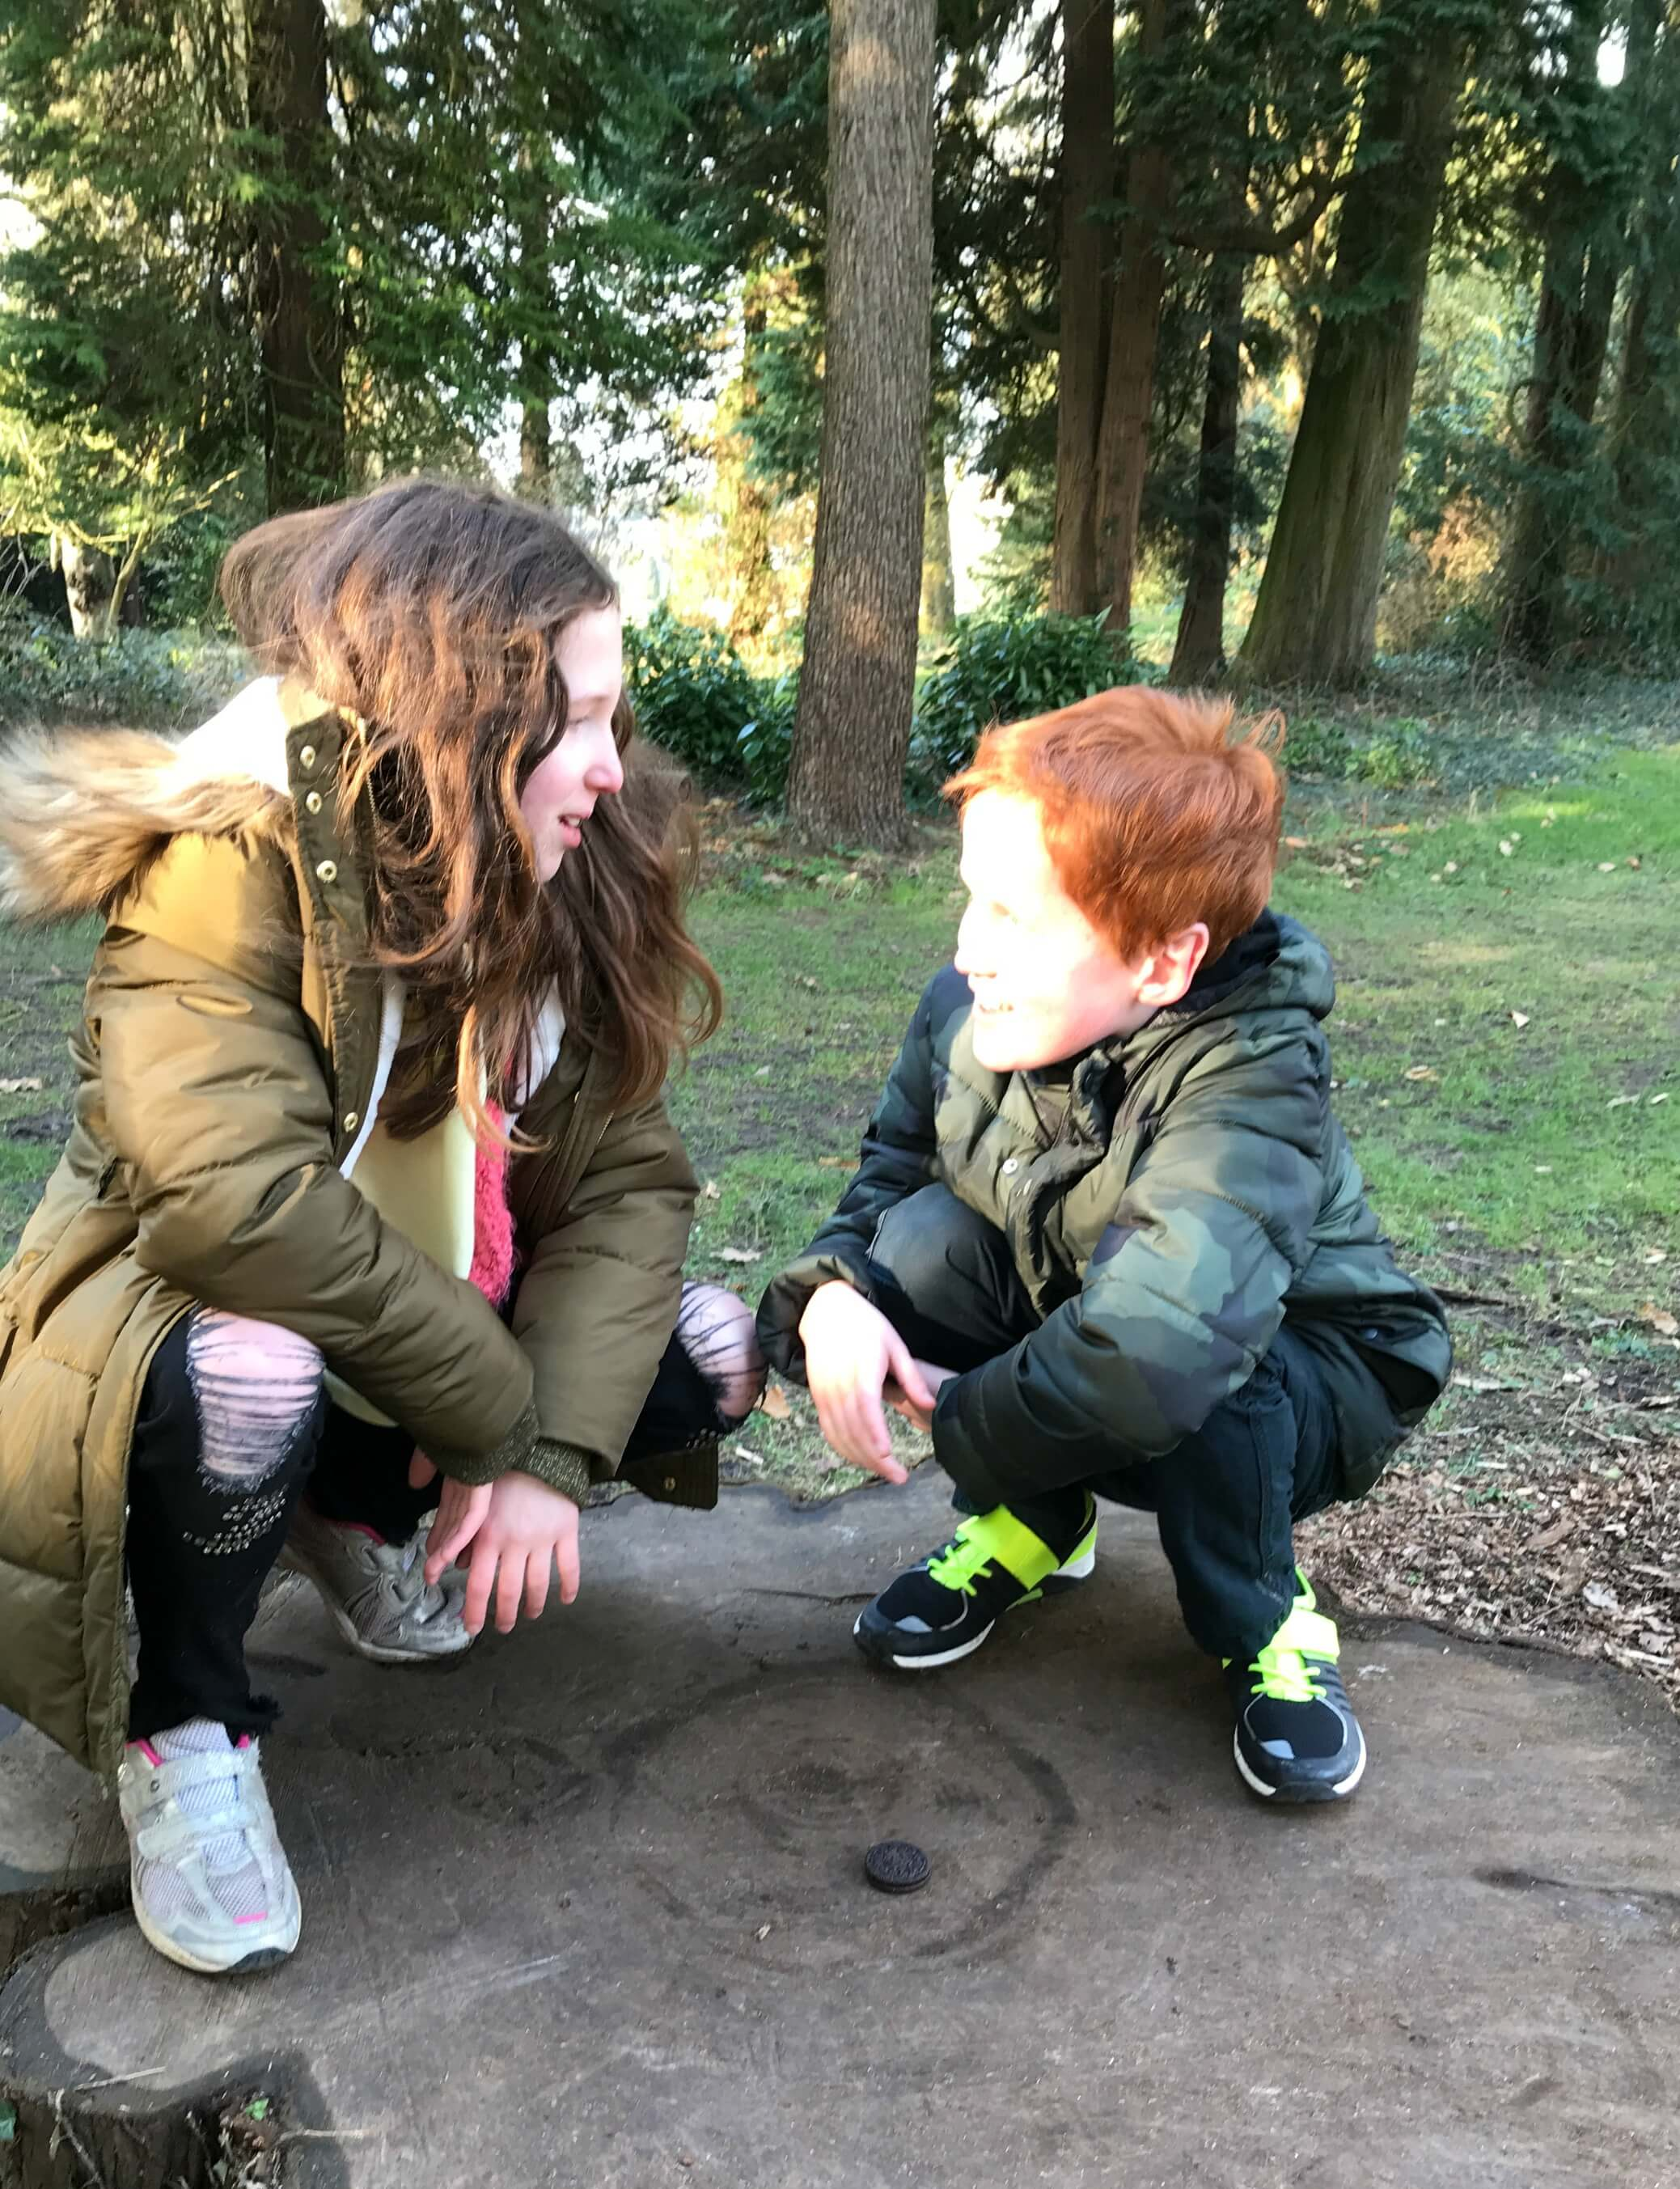 New wooded play area at Dyffryn Gardens - Caitlin & Ieuan in conversation during the Oreo Cookie Quest